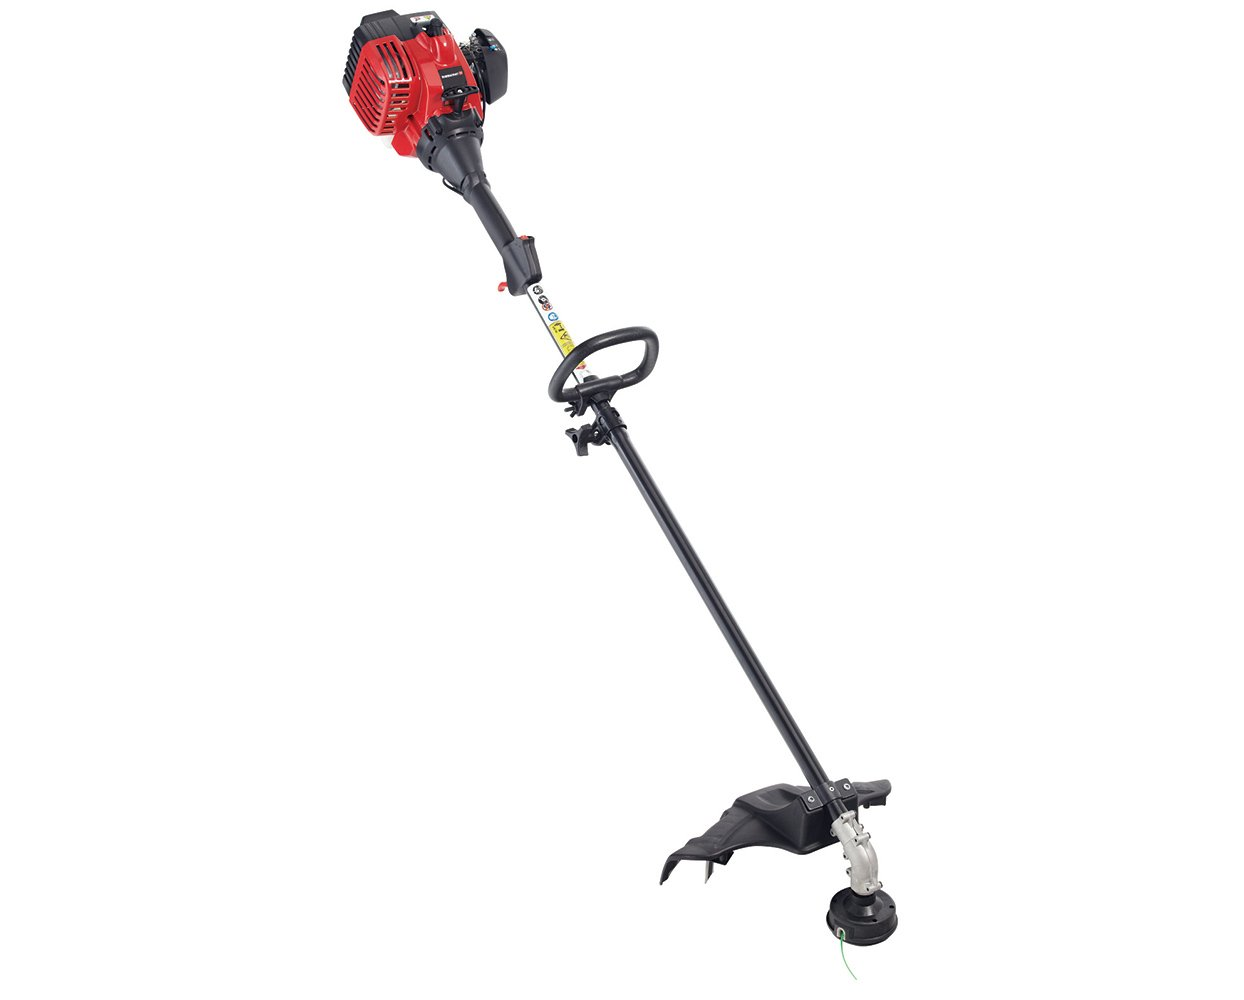 Yard Machines 41AD25CC800 Curved Shaft Gas Trimmer, 25cc, 2 Cycle